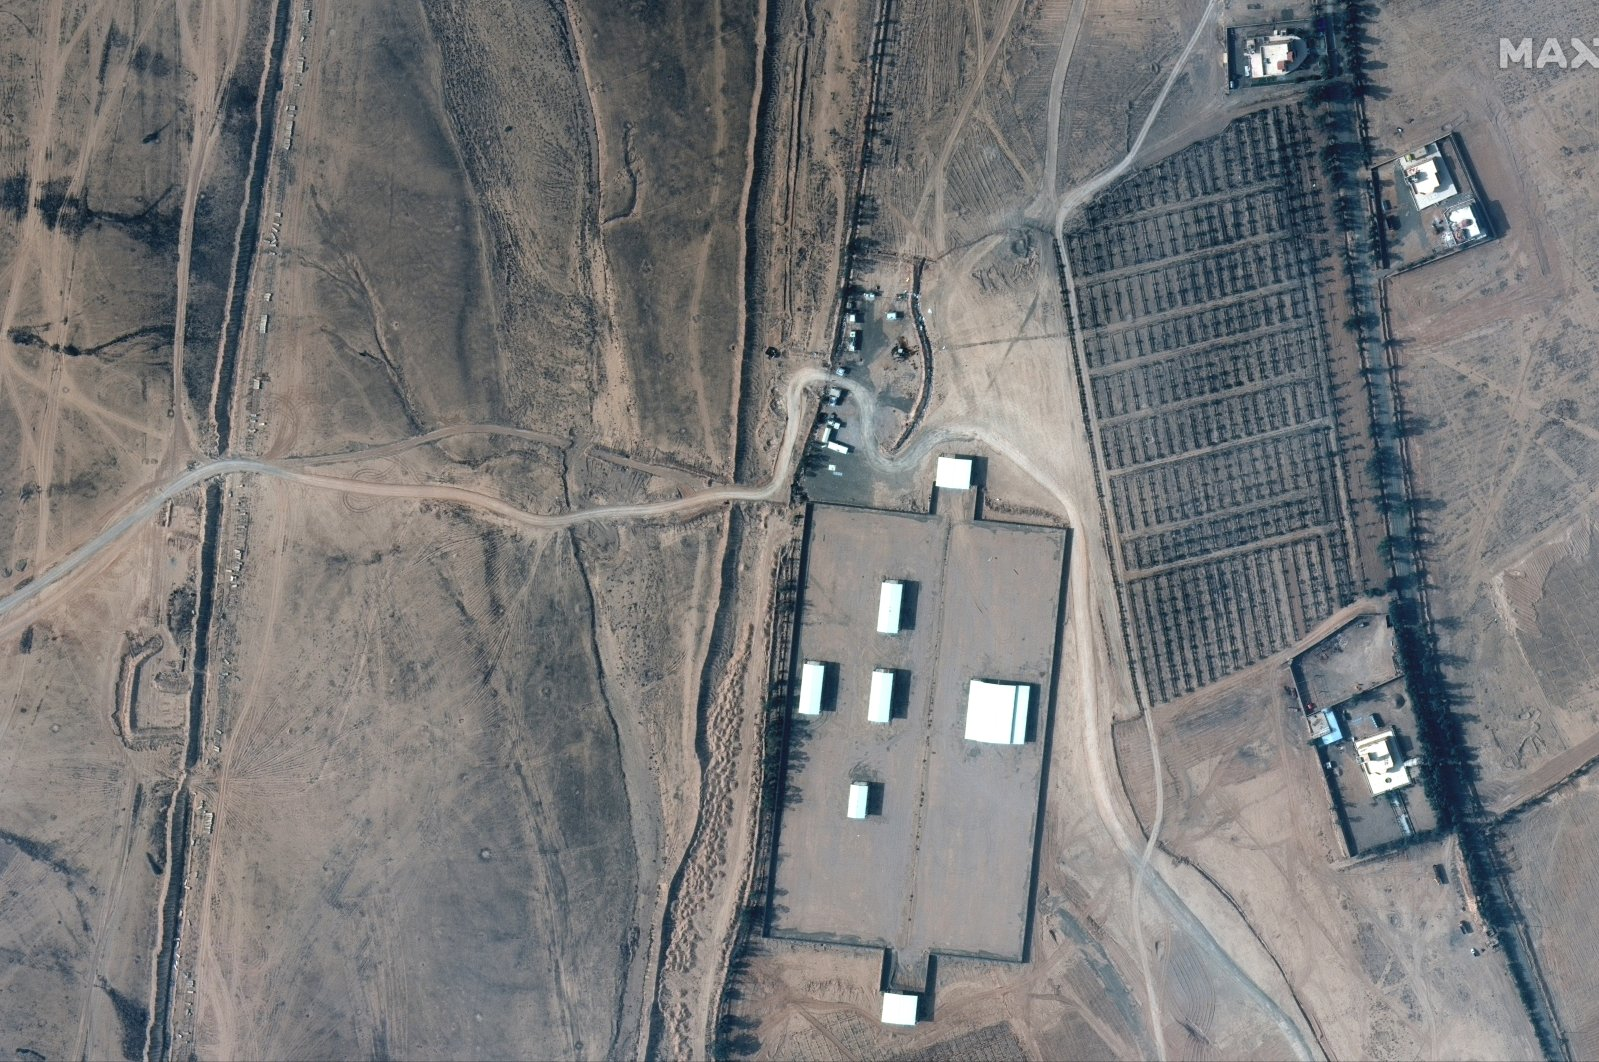 A handout satellite image made available by MAXAR Technologies shows a closer view of the Iraq-Syria border, Feb. 26,  2021. (EPA Photo)